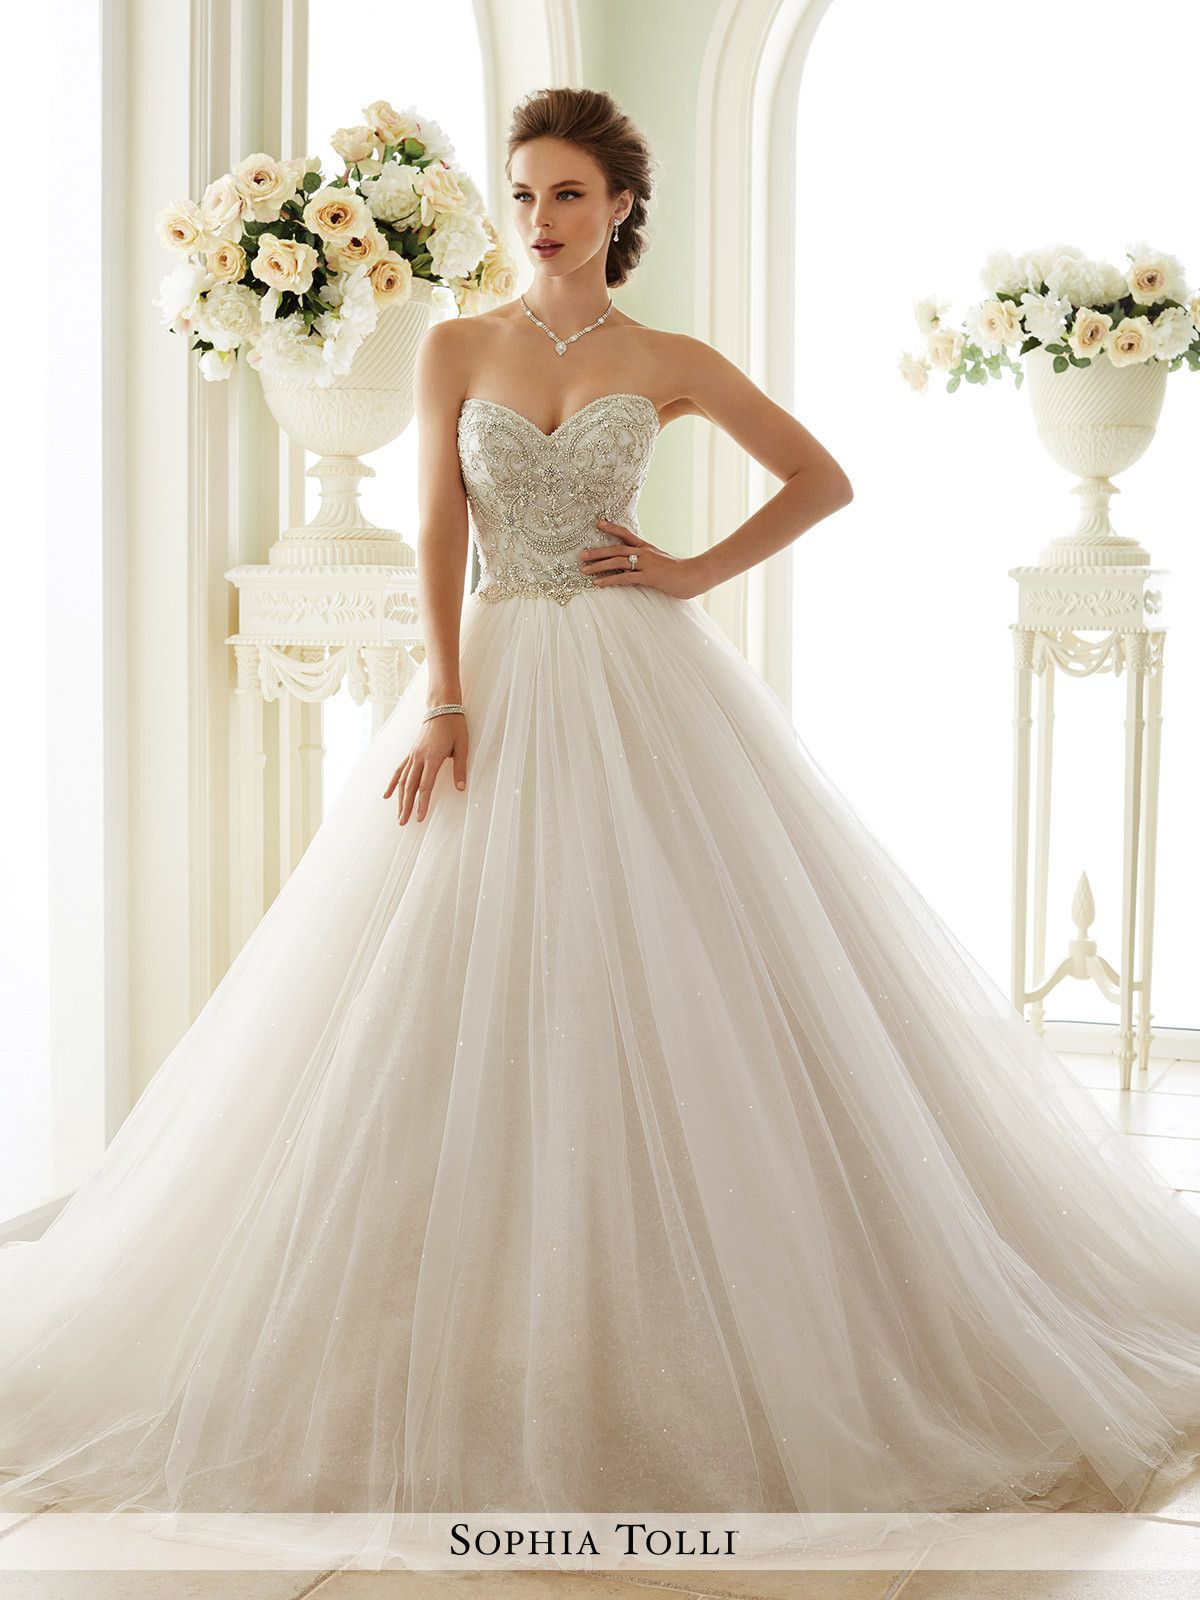 Blog | Tuxedo rental, Bridal boutique and Bridal gowns